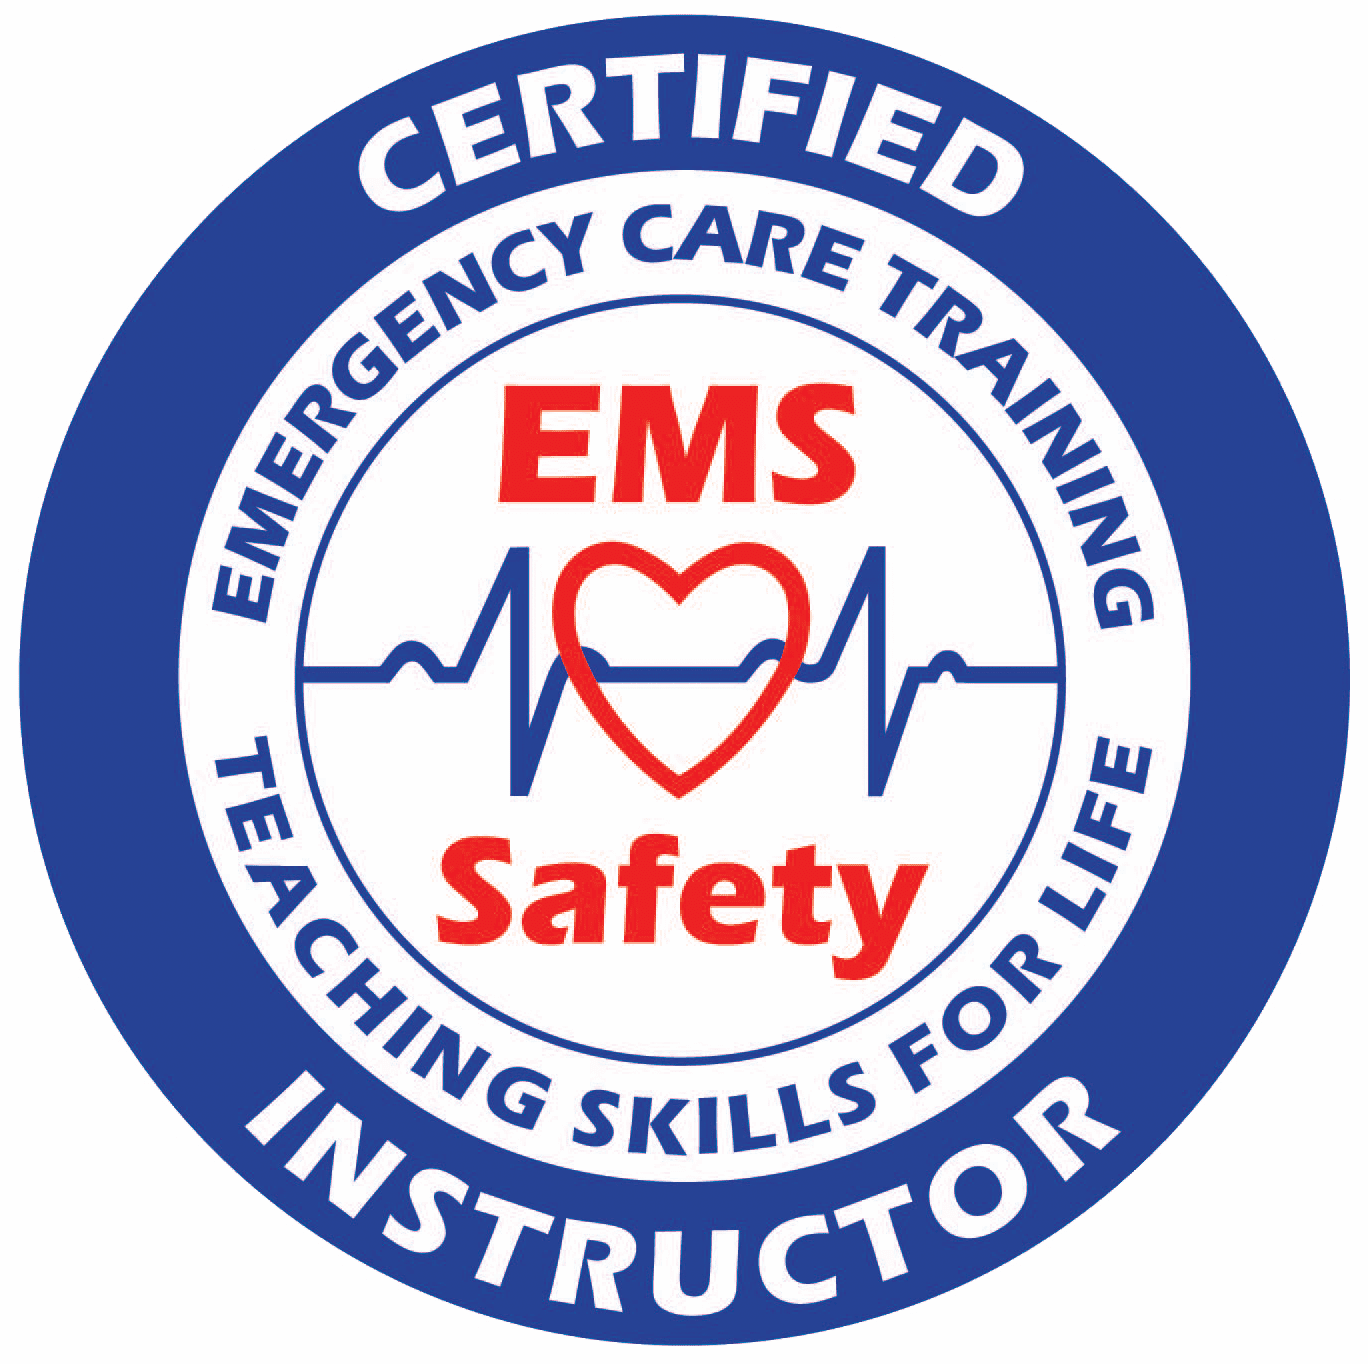 Environmental Safety Services,  CPR / AED / First Aid Training